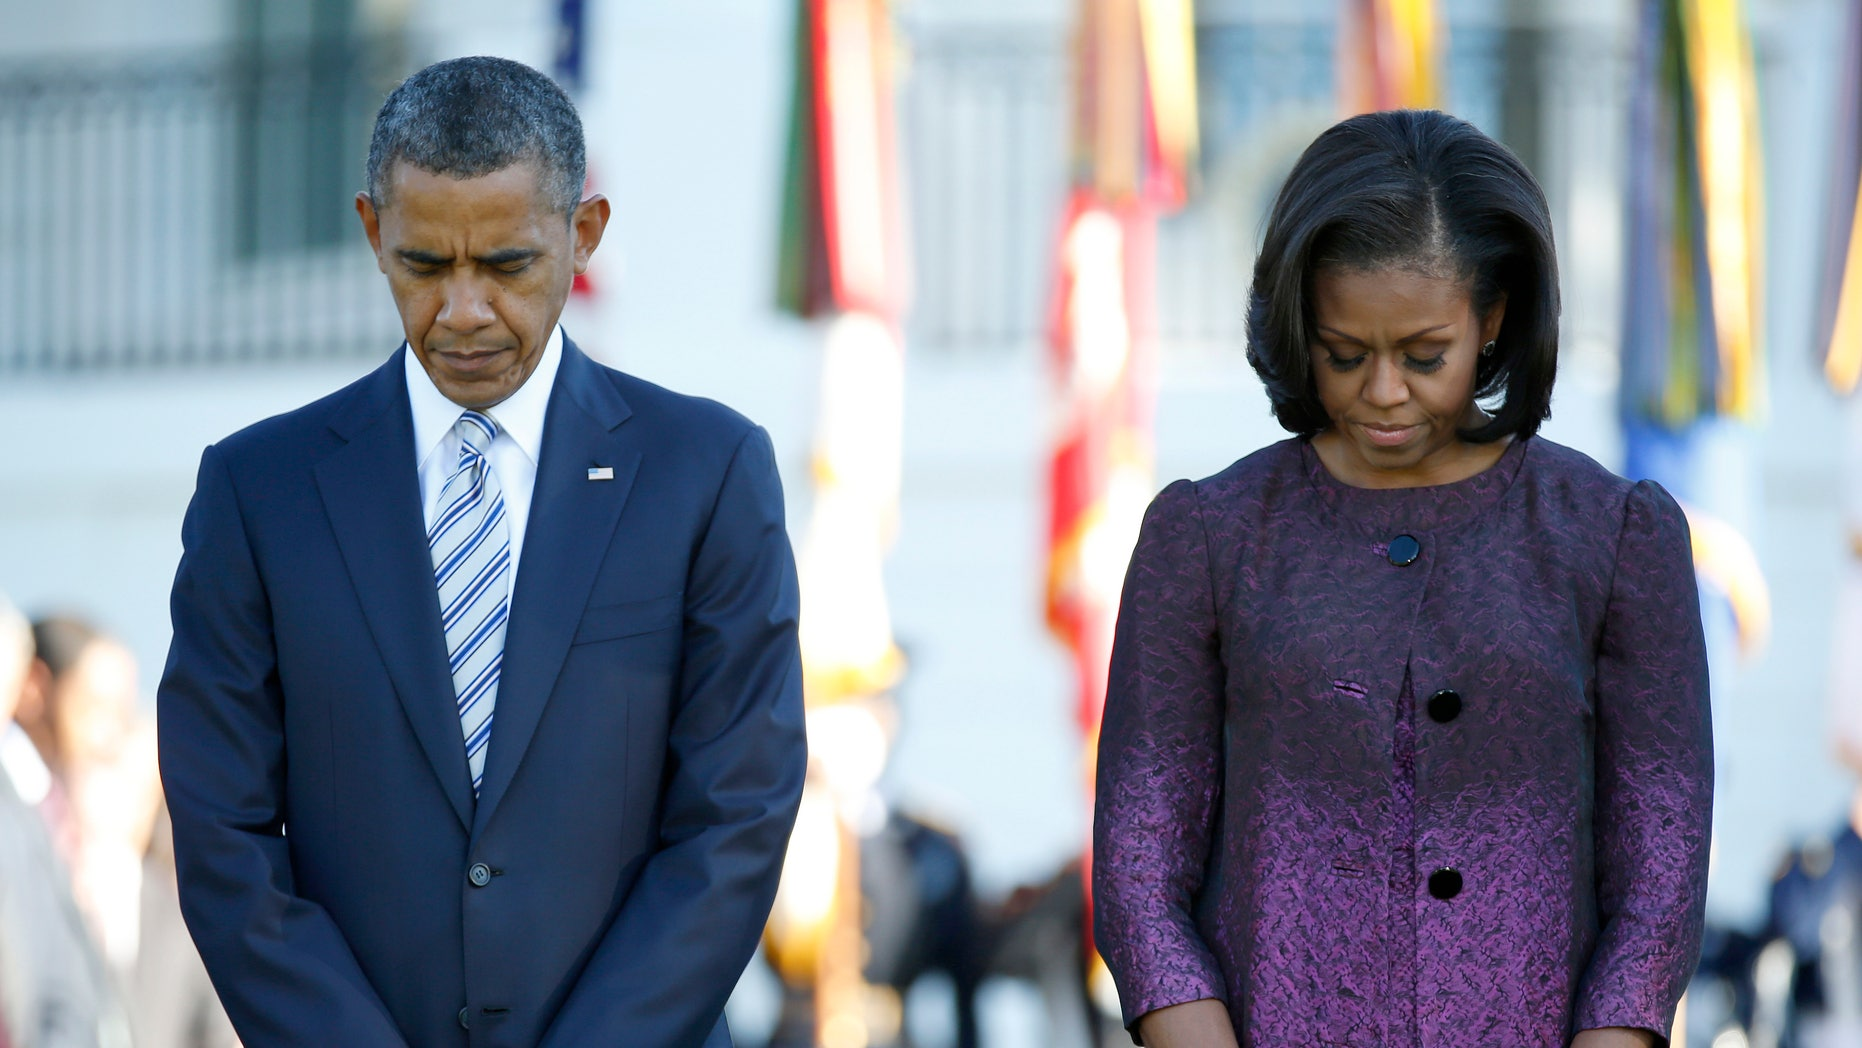 FILE: Sept. 11, 2012: President Obama and first lady Michelle Obama mark the 11th anniversary of the 9-11 attacks, on the South Lawn of the White House in Washington, D.C.